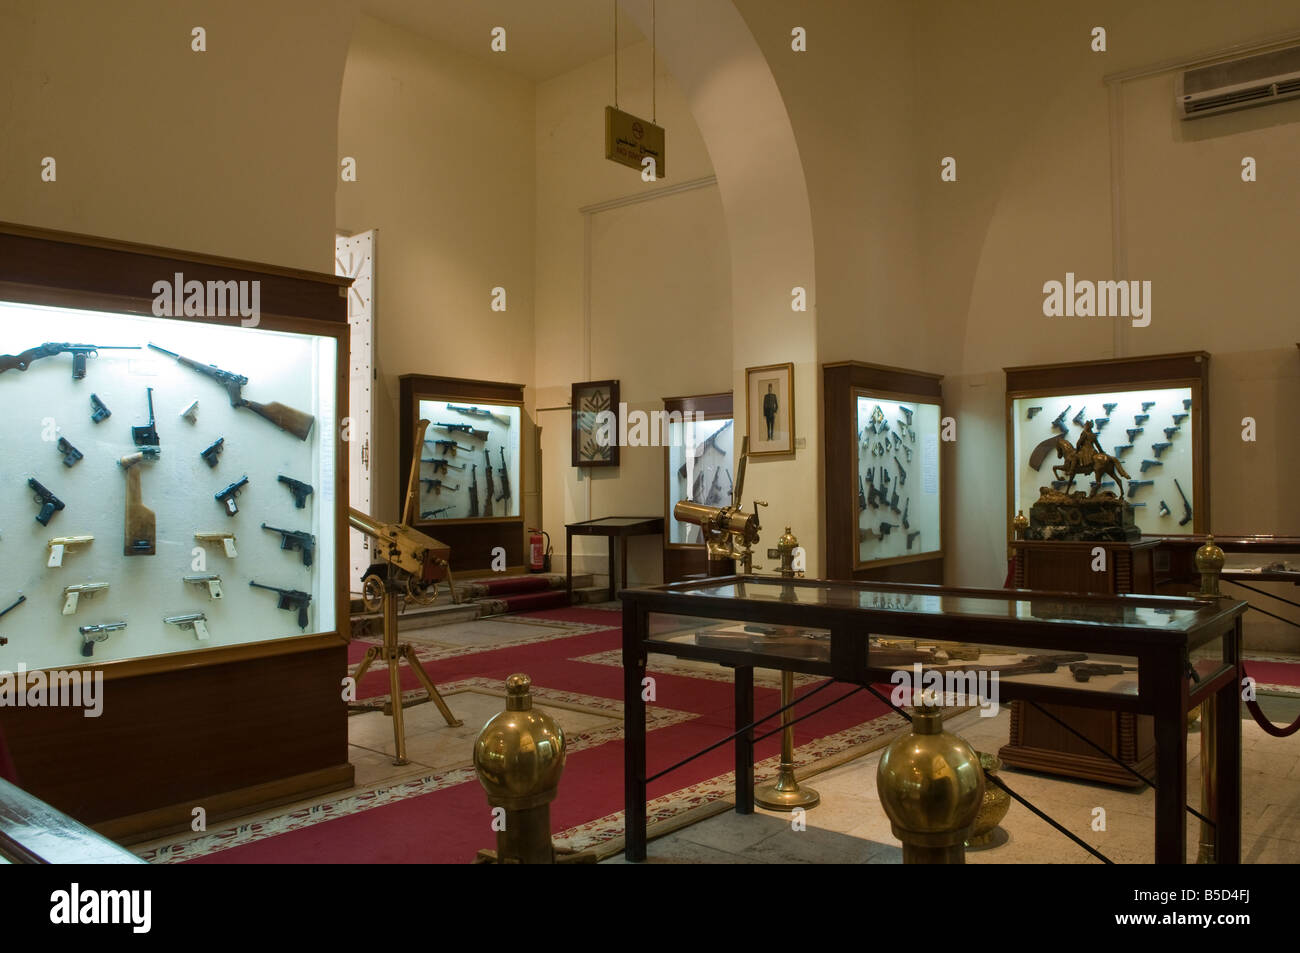 Old weapons displayed at the the Arms museum in Abdeen Palace, Cairo Egypt Stock Photo